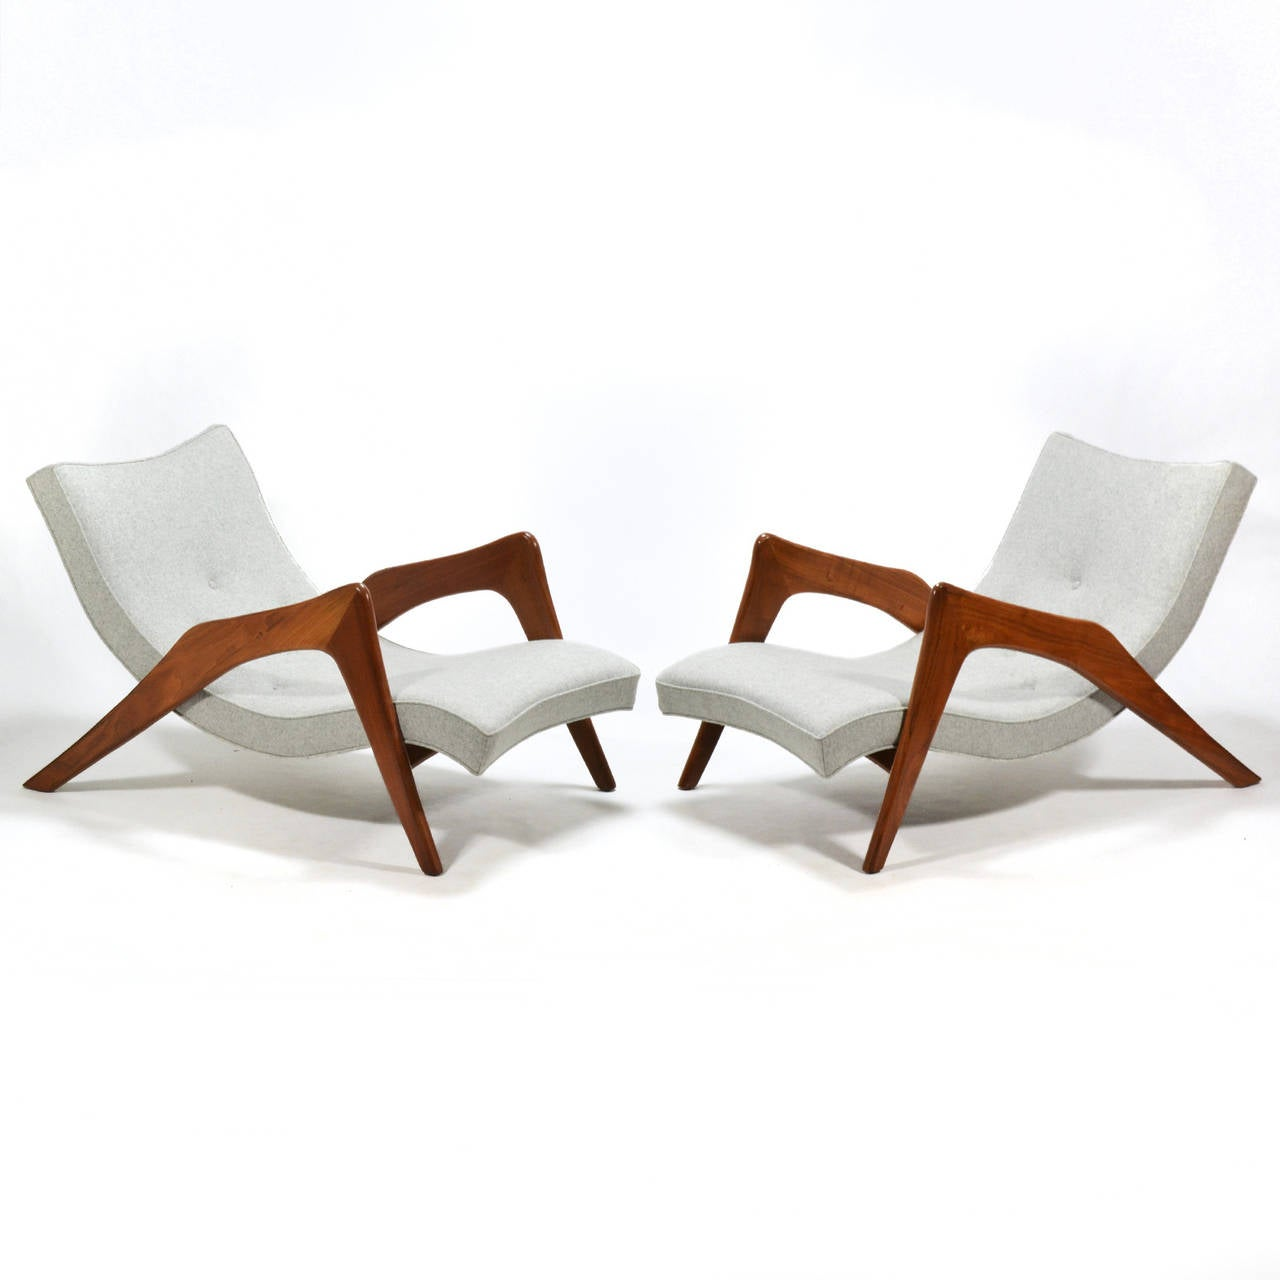 The long, leggy form of Adrian Pearsall's model 745-LB Crescent chair has also earned it the nickname